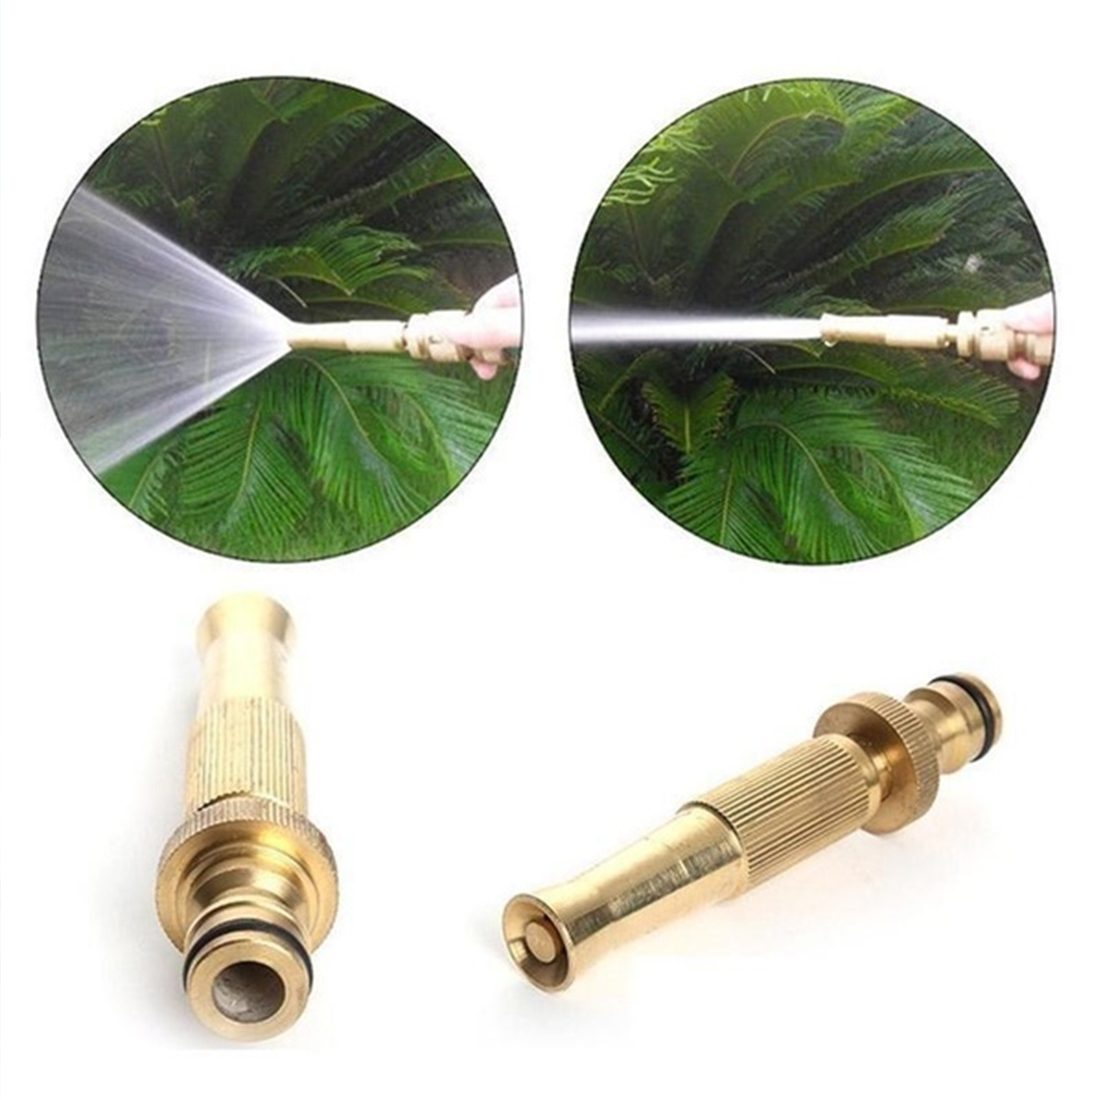 Sprinkler-System Irrigation Spray-Gun Watering Garden-Hose Car-Wash-Lawn Brass Adjustable